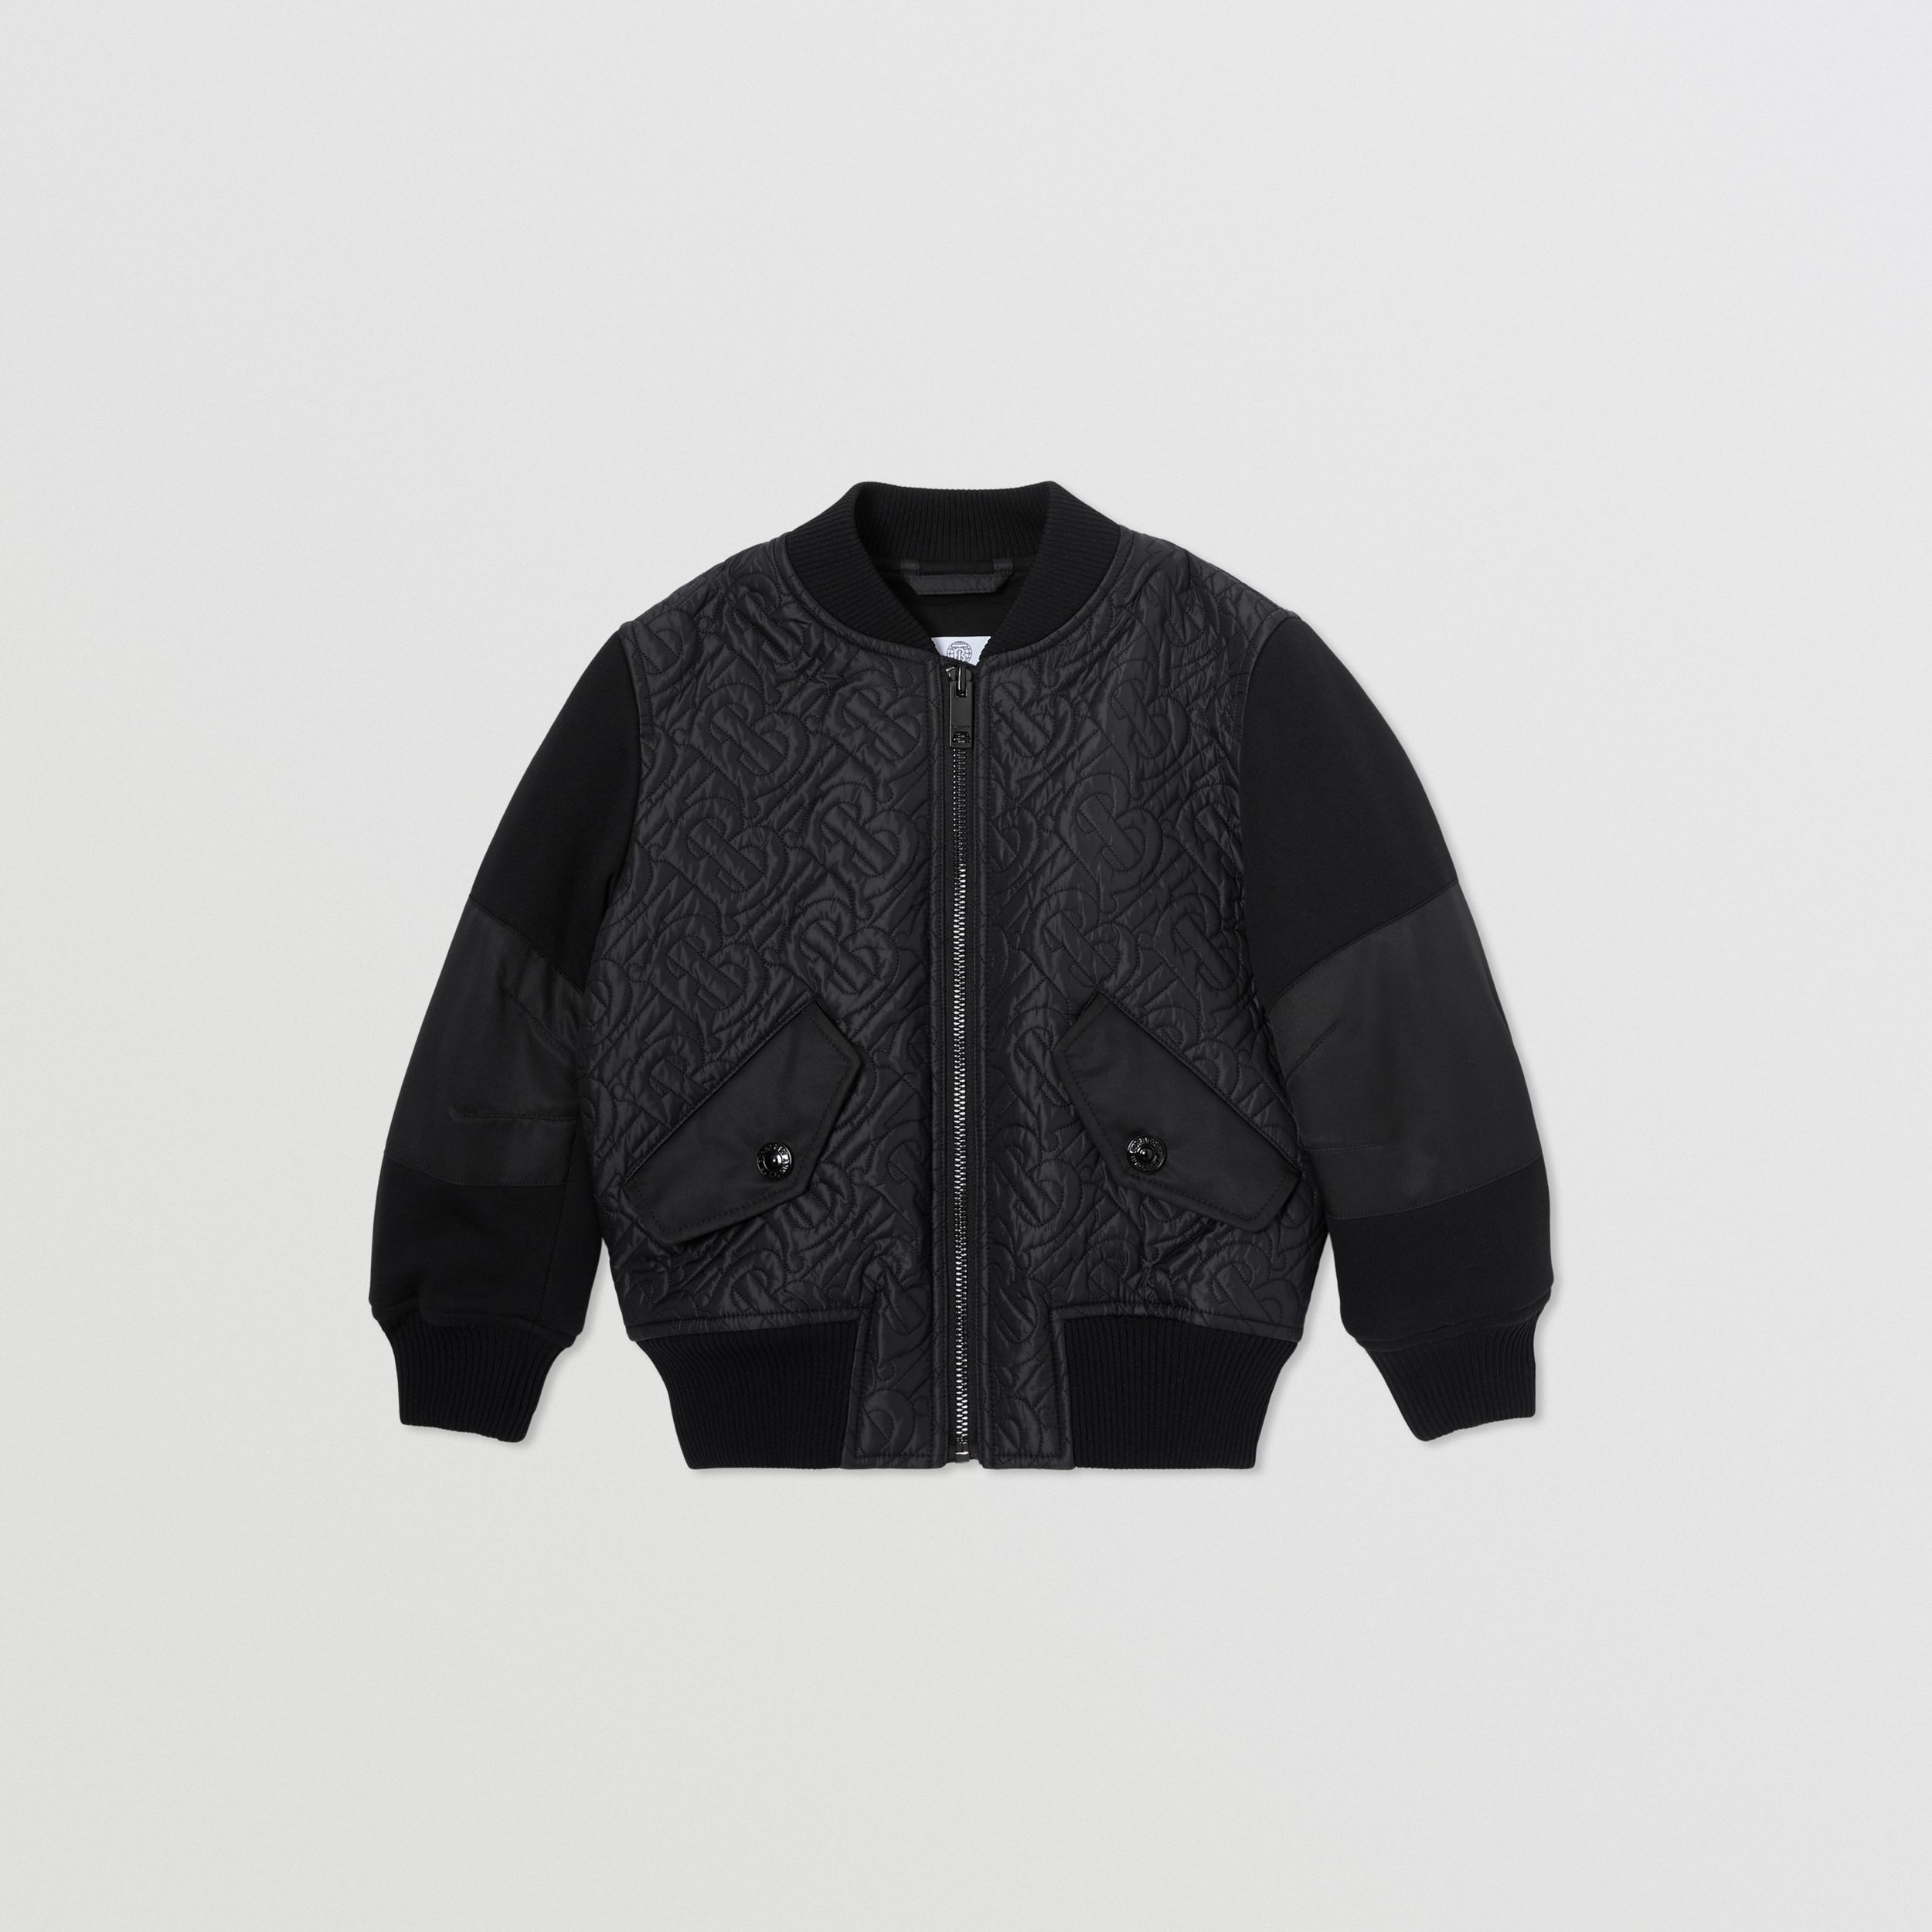 Monogram Quilted Recycled Polyester Bomber Jacket in Black | Burberry - 1